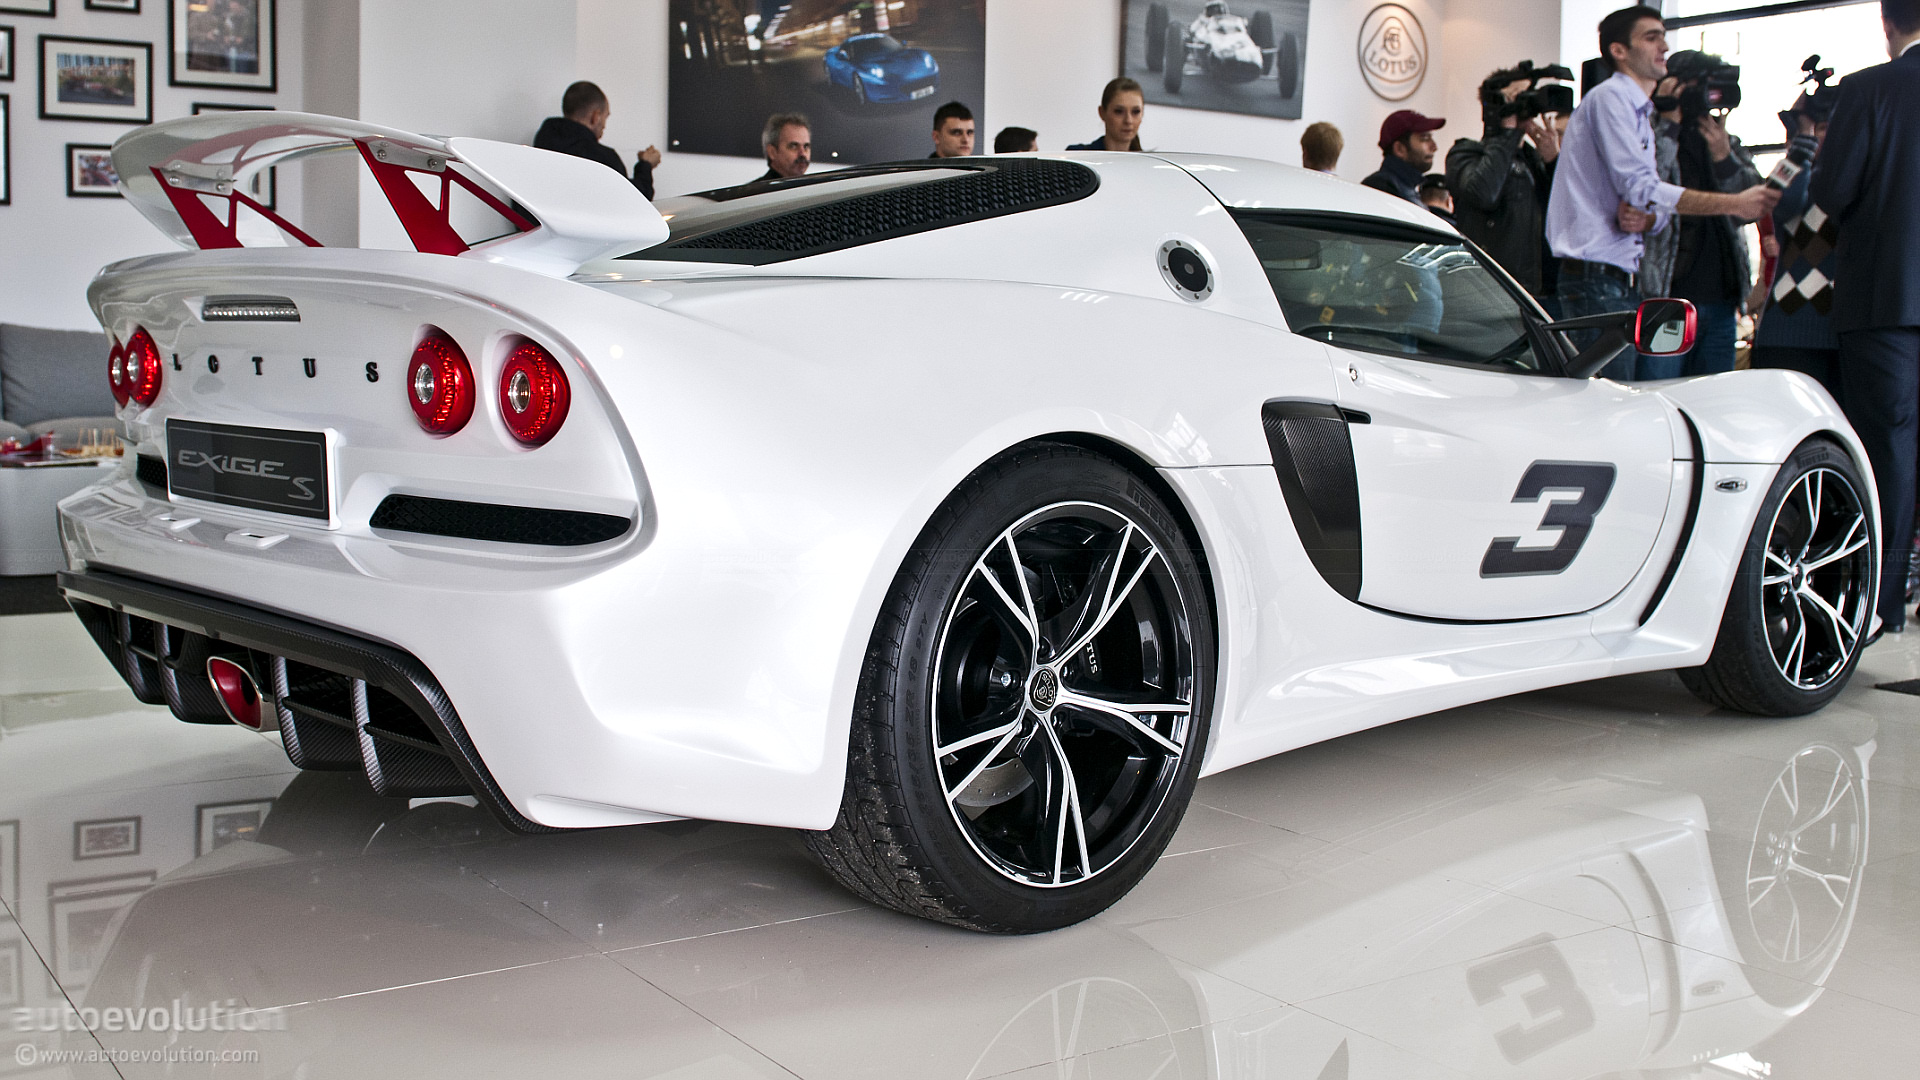 2012 Lotus Exige S Makes Non-Auto Show Debut: Romania - autoevolution